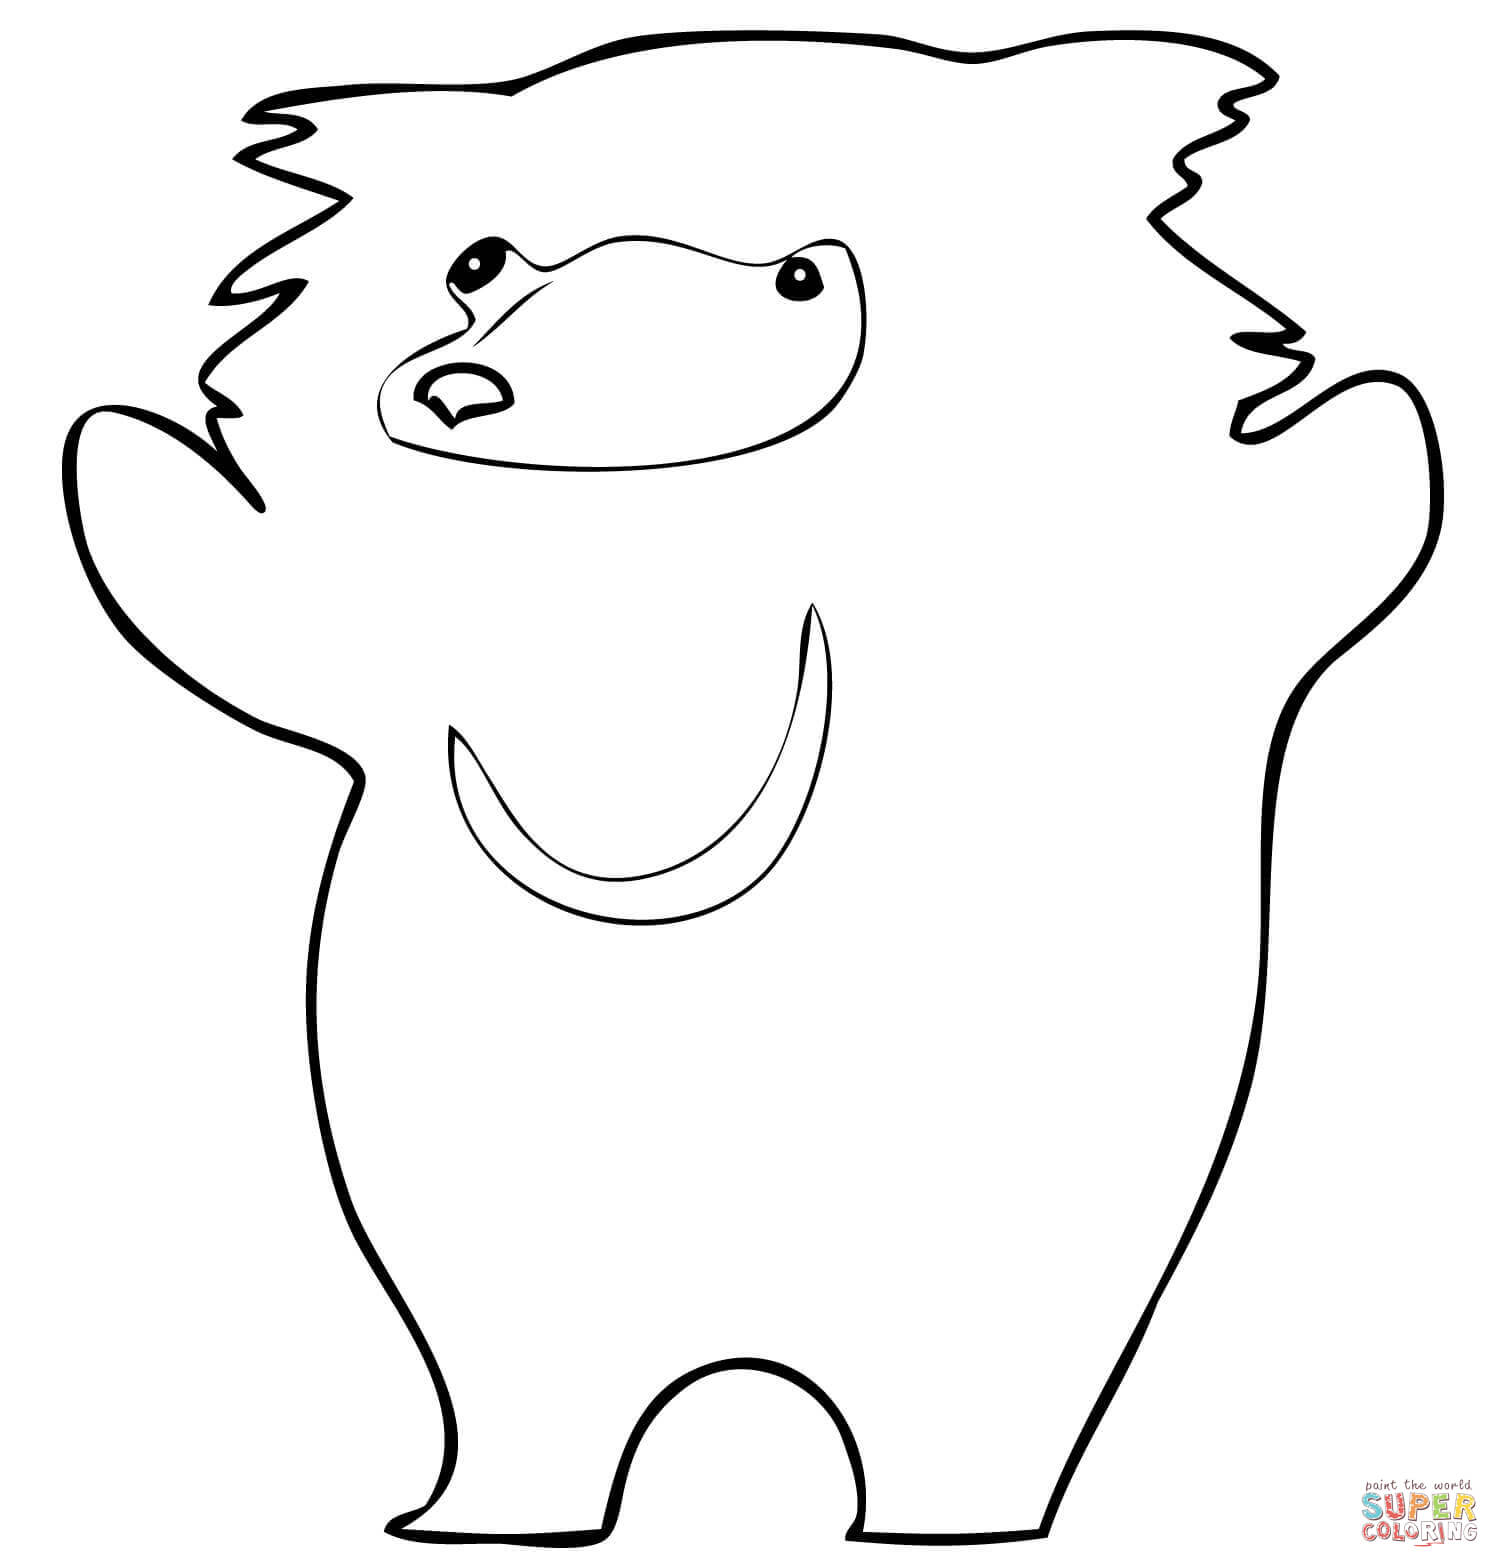 1500x1568 Cute Sloth Bear Coloring Page Free Printable Coloring Pages